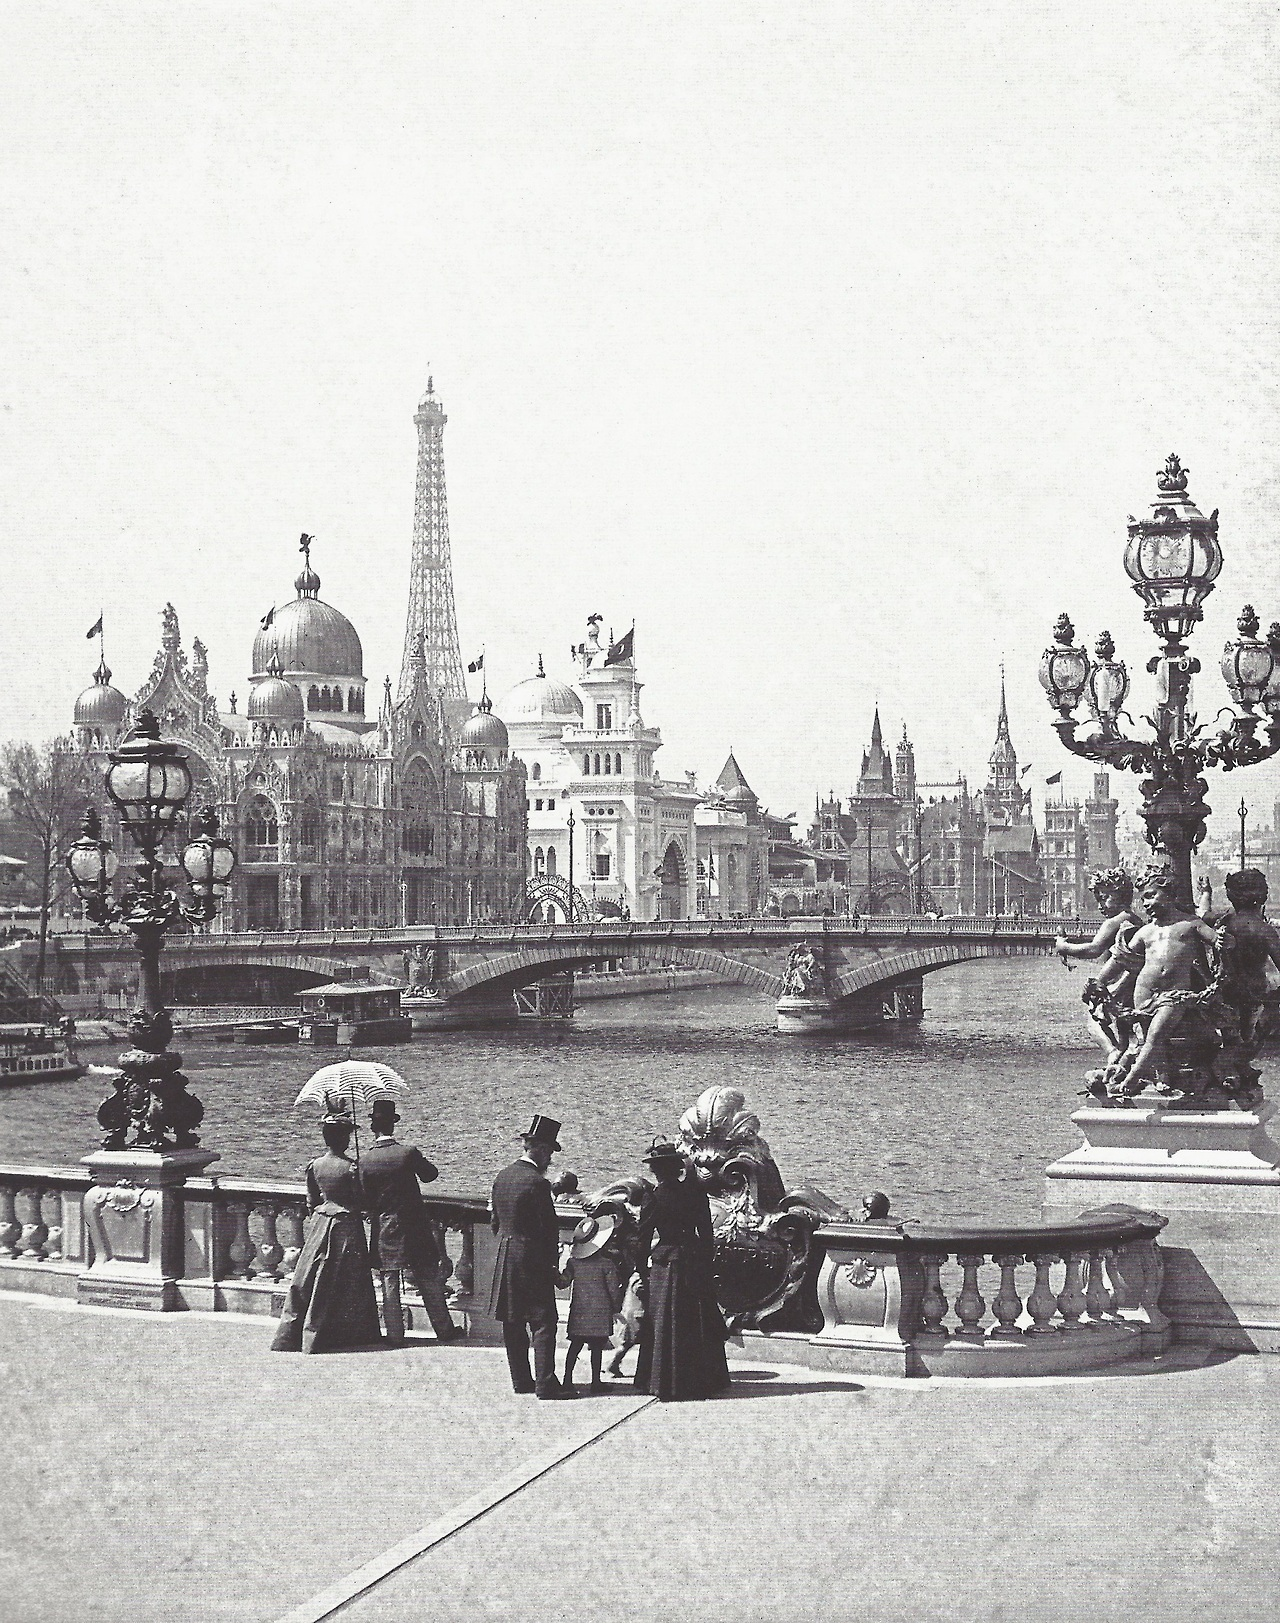 a history of world exposition 1900 Essay on the grand palais at the 1900 exposition universalle in paris, france created as a final assignment in world's fairs: social and architectural history, honr 219f, spring 2001.